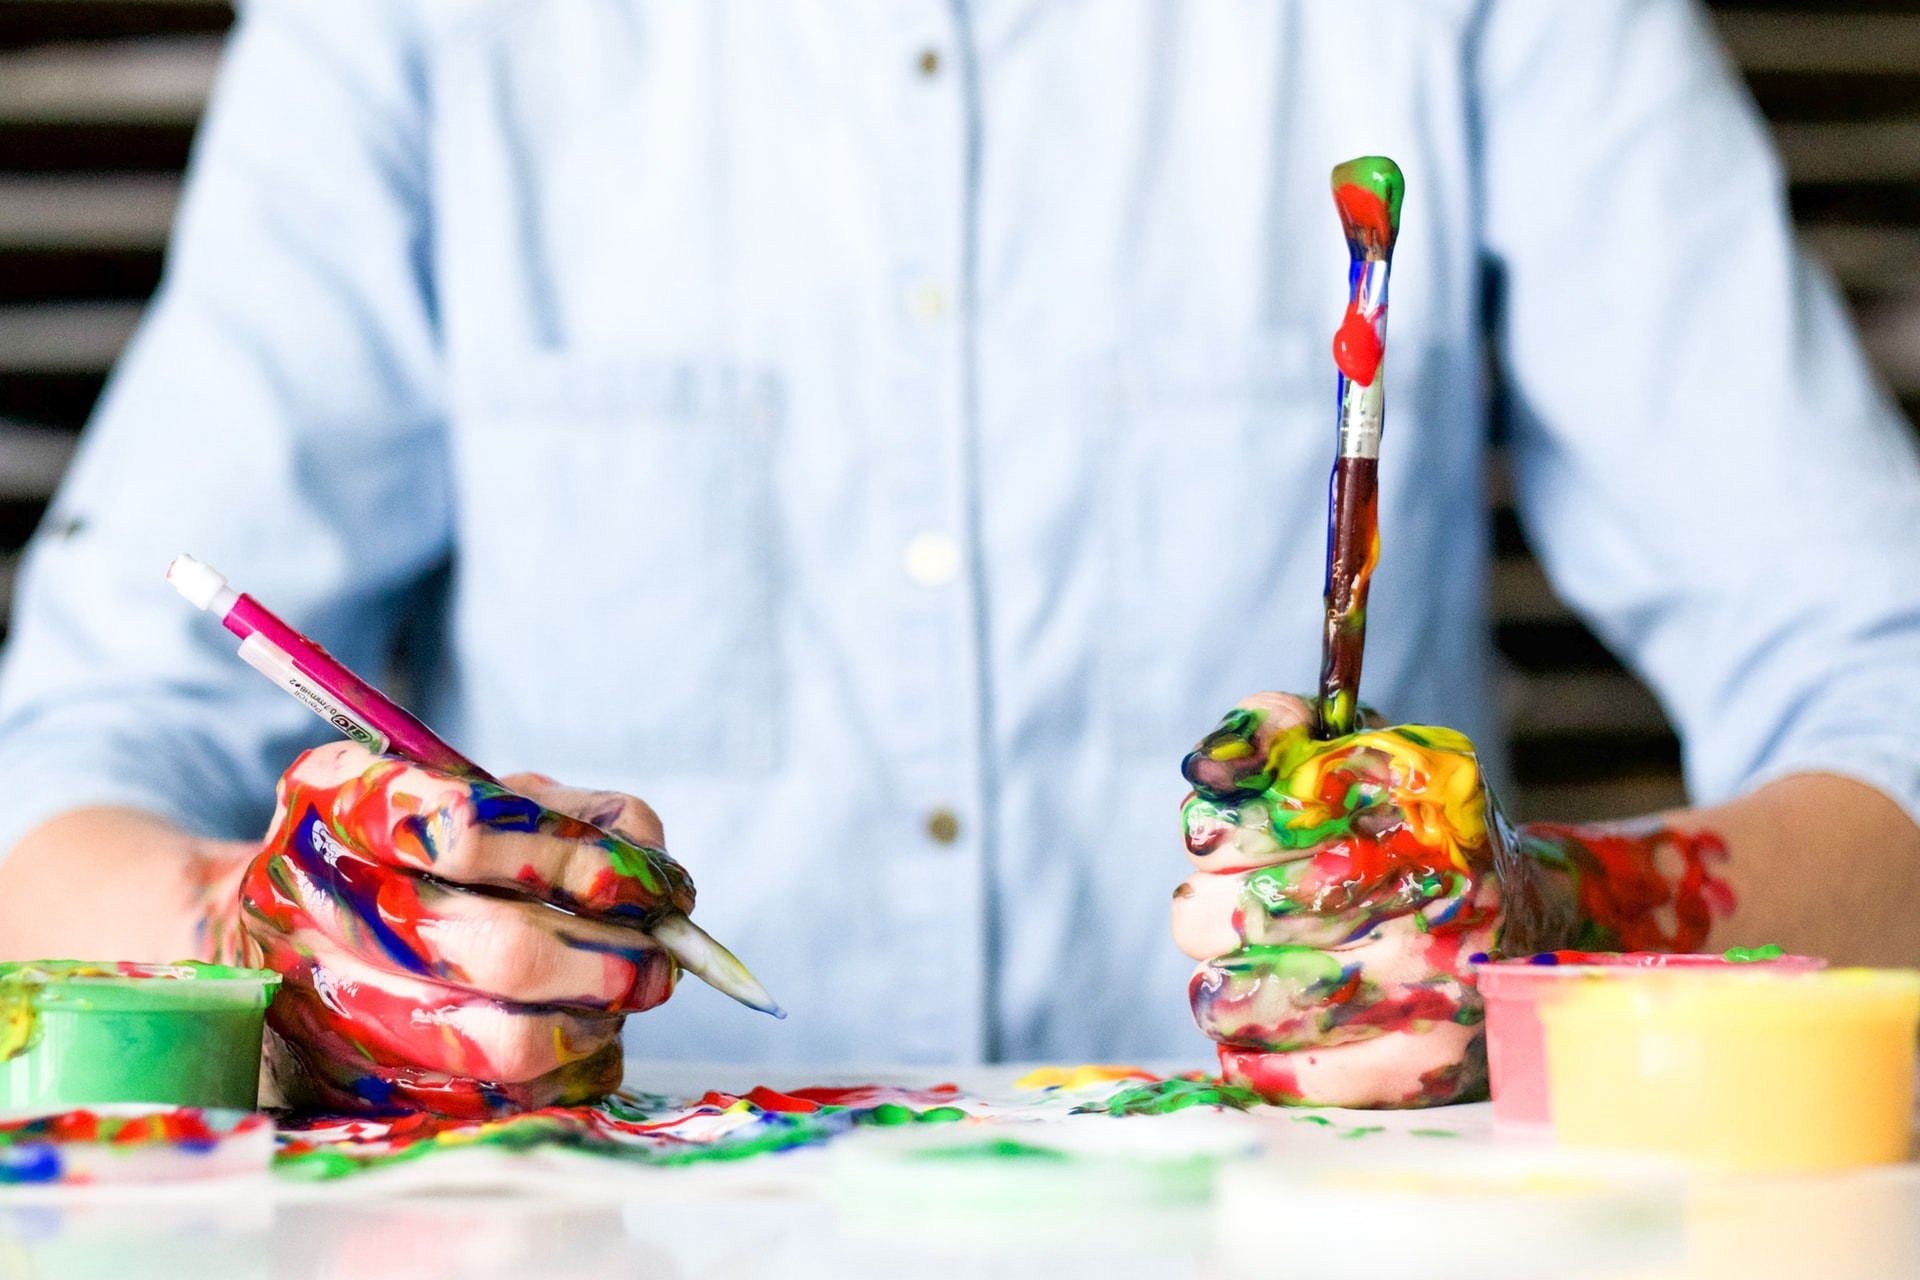 A person painting with a few colorful brushes.